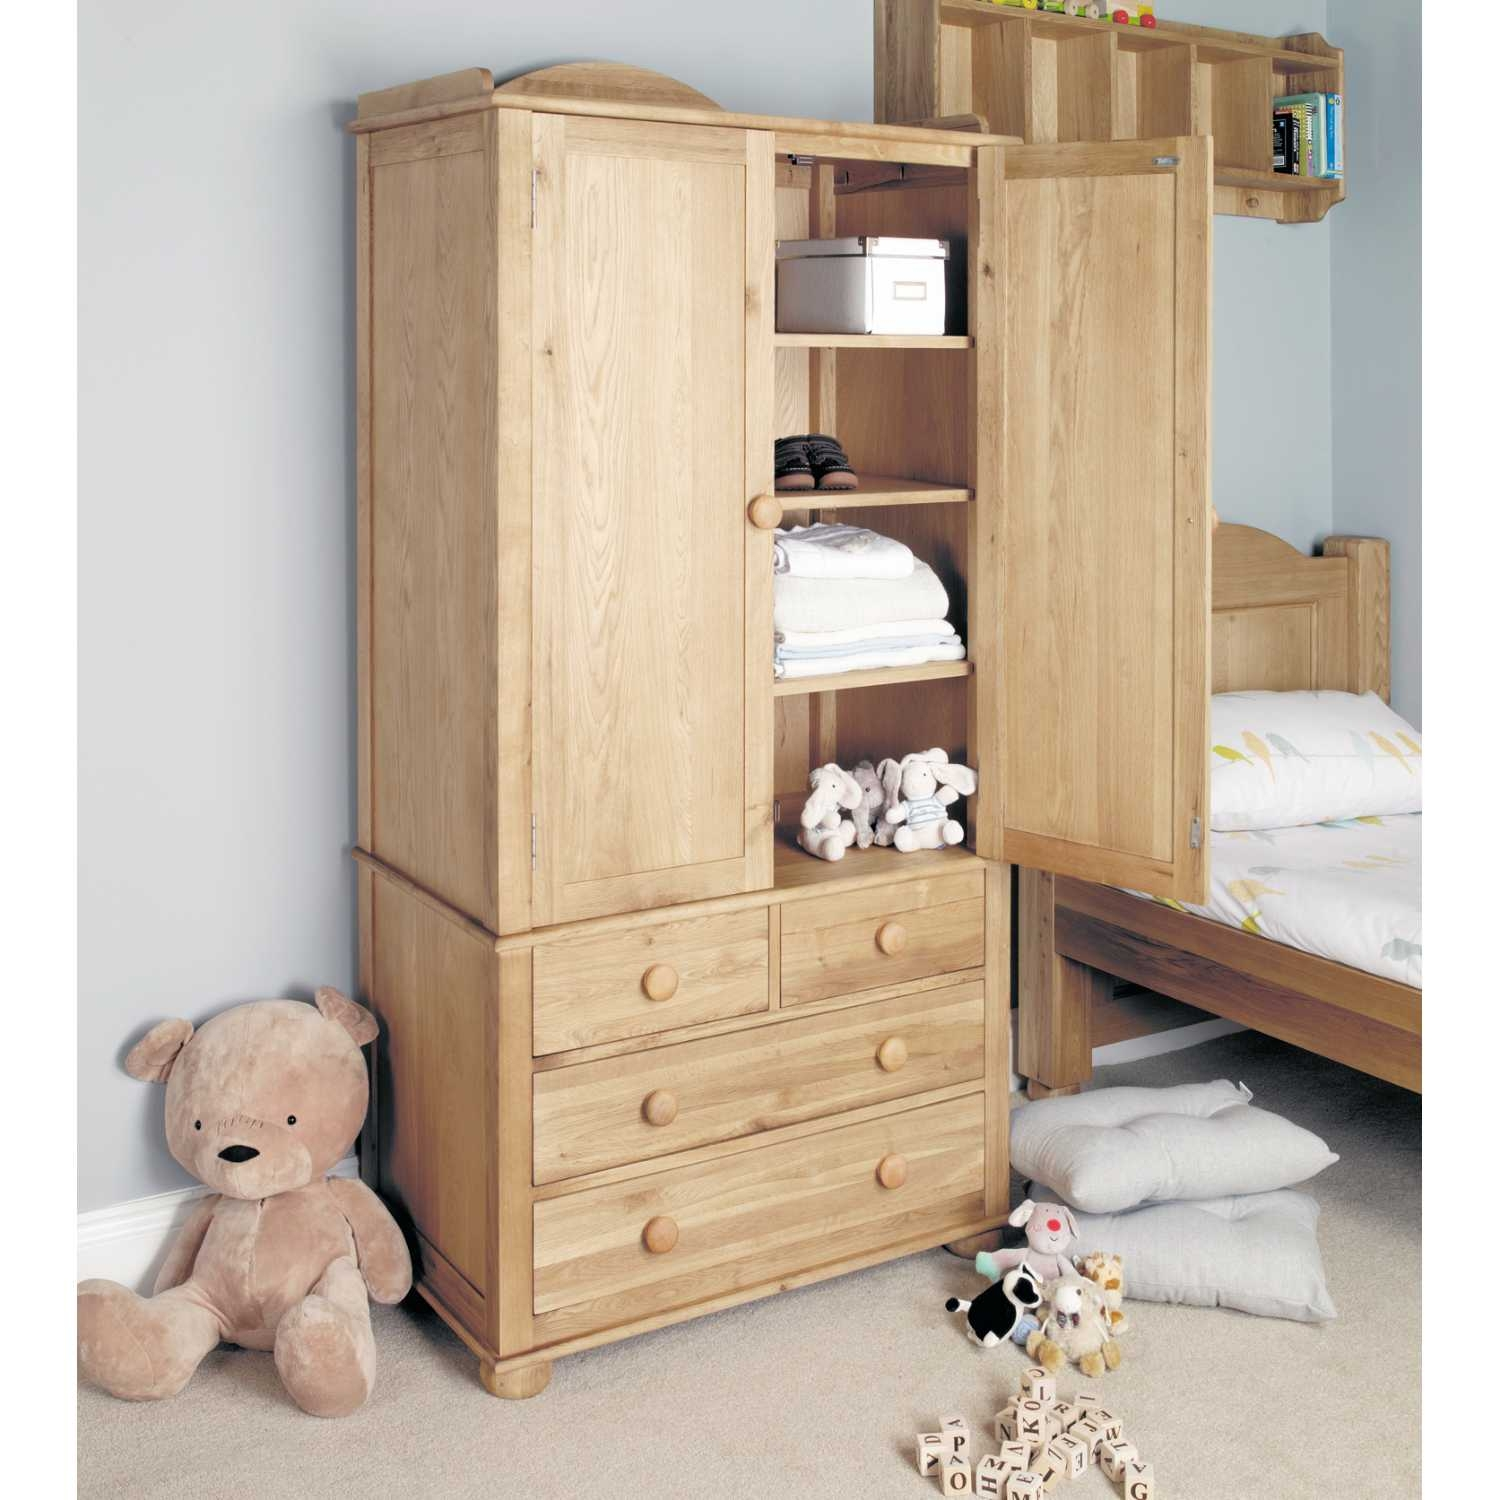 Featured Image of Wardrobe With Drawers And Shelves